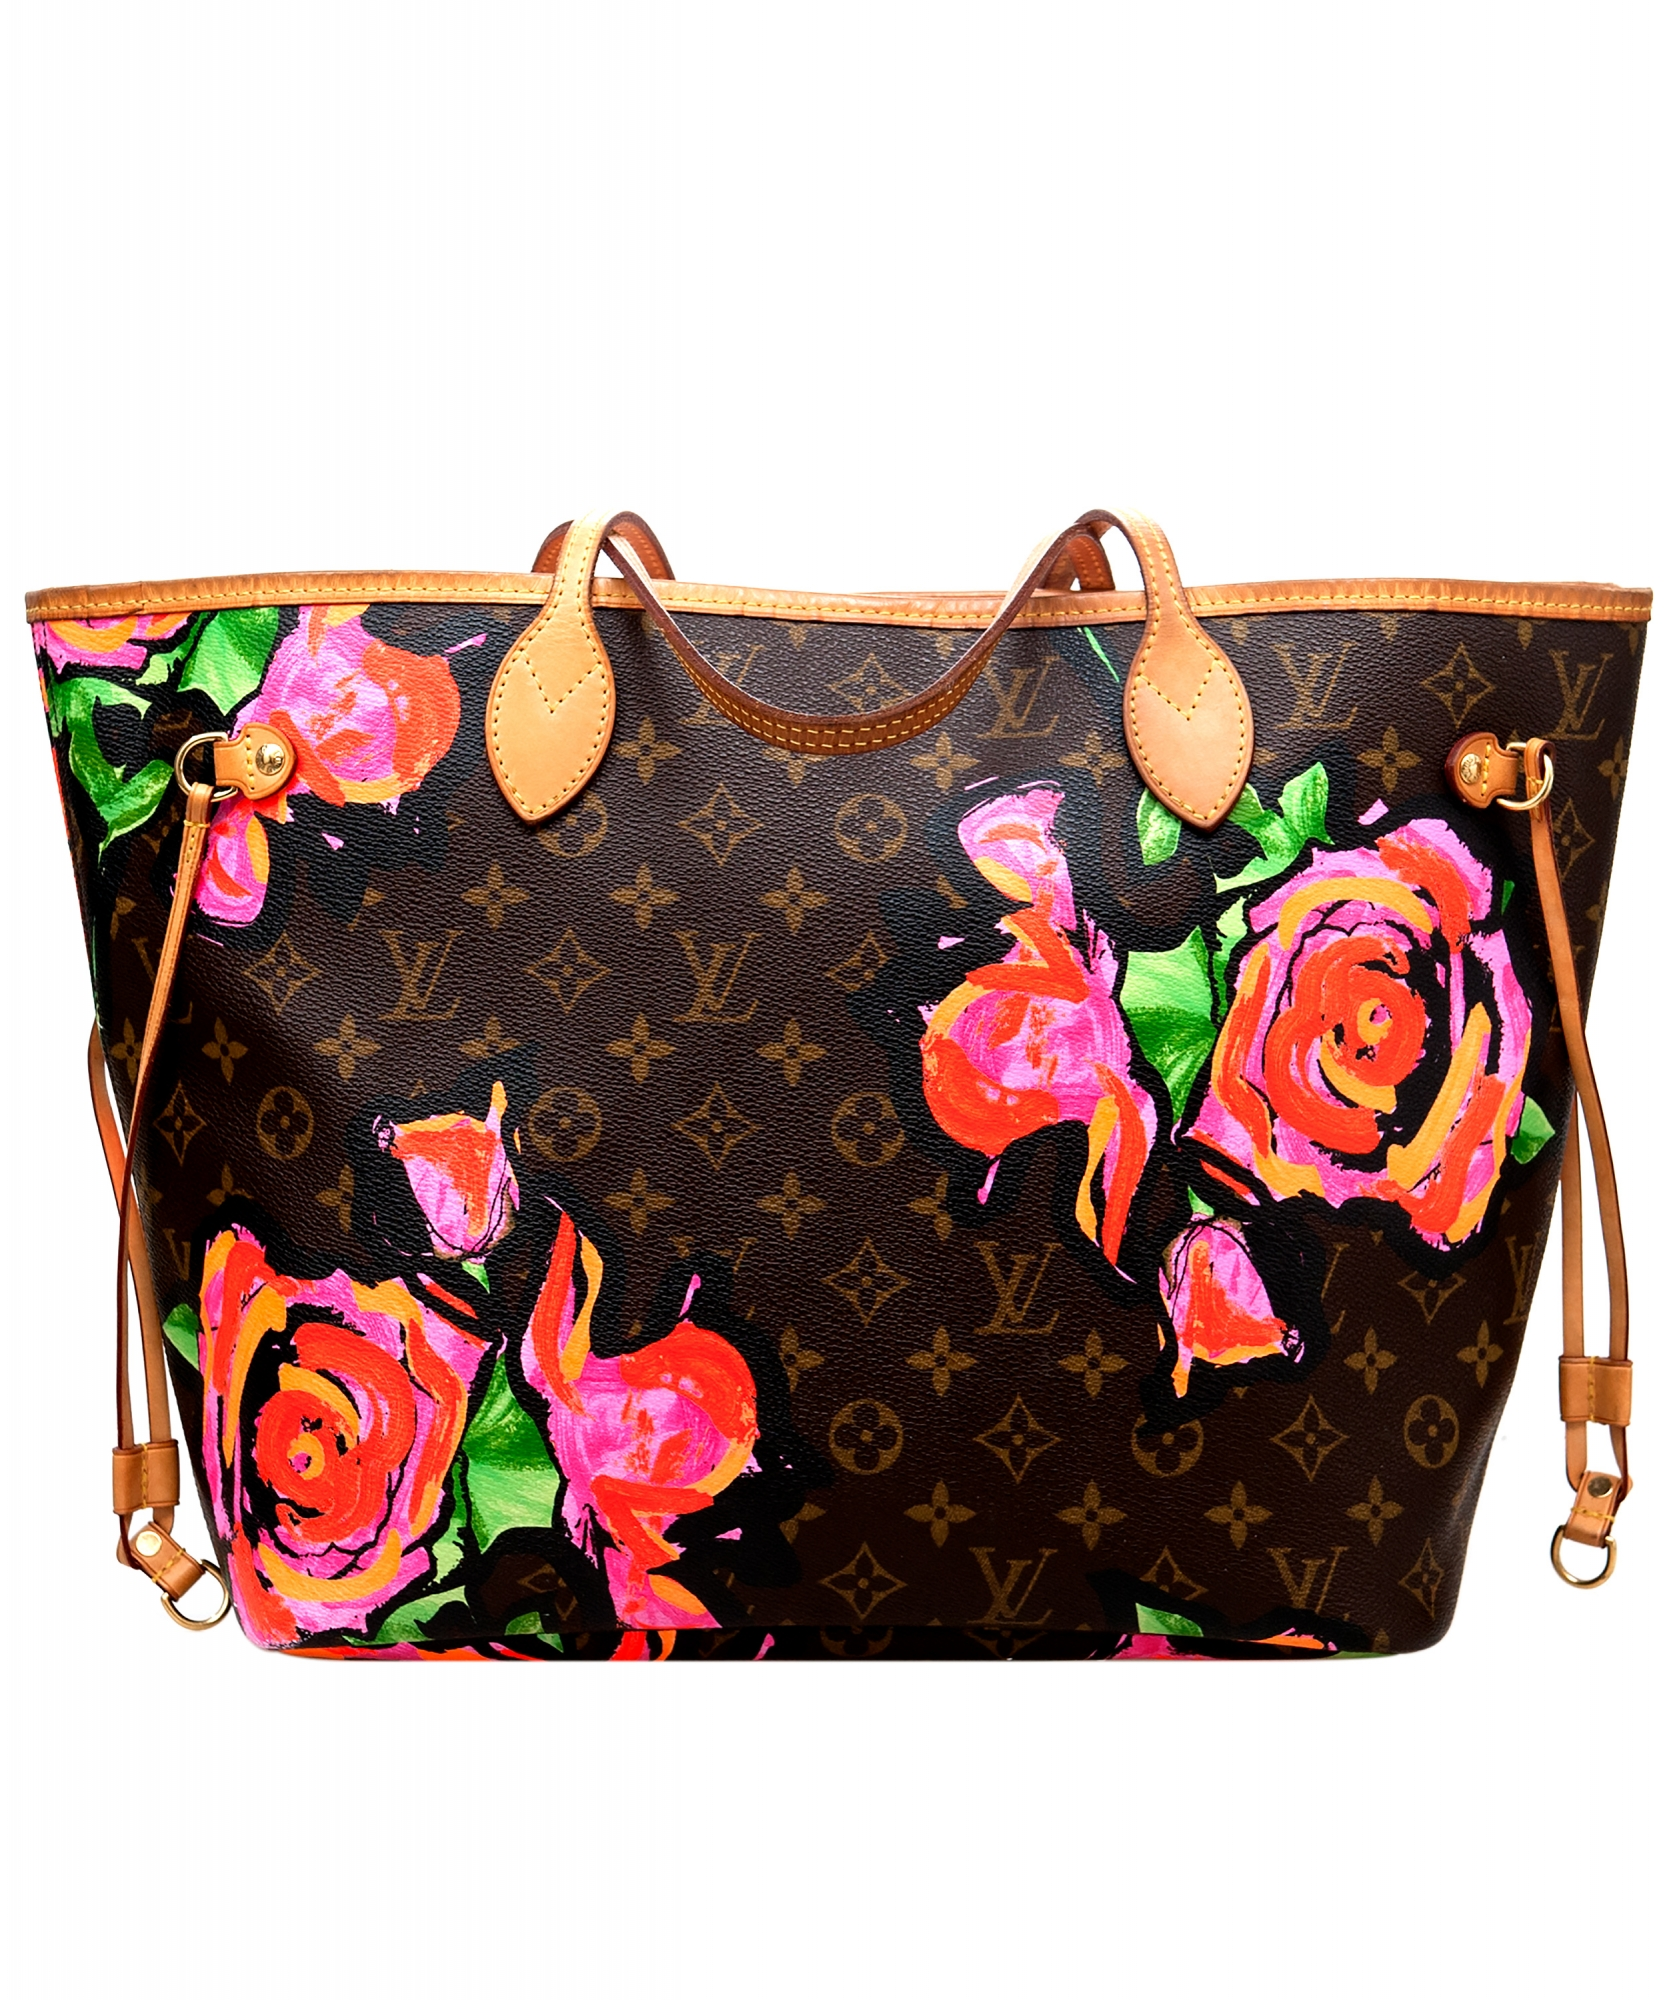 6bc0ded6574a Louis Vuitton Monogram Graffiti Roses Neverfull MM Bag - Limited Edition